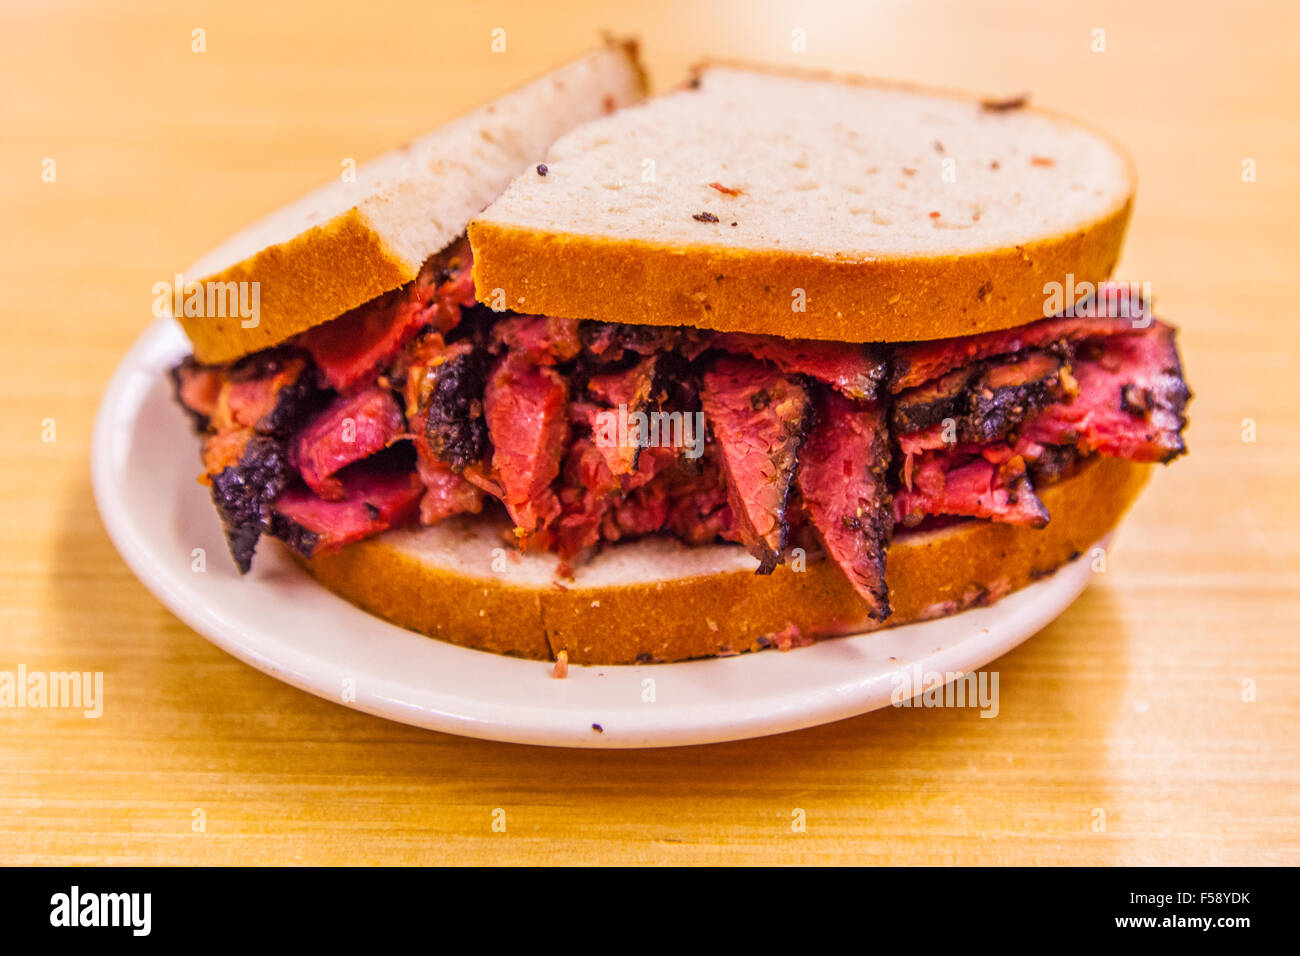 Pastrami Salt Beef On Rye Bread Sandwich At Katz S Deli A Delicatessen Diner On The Lower East Side New York City U S A